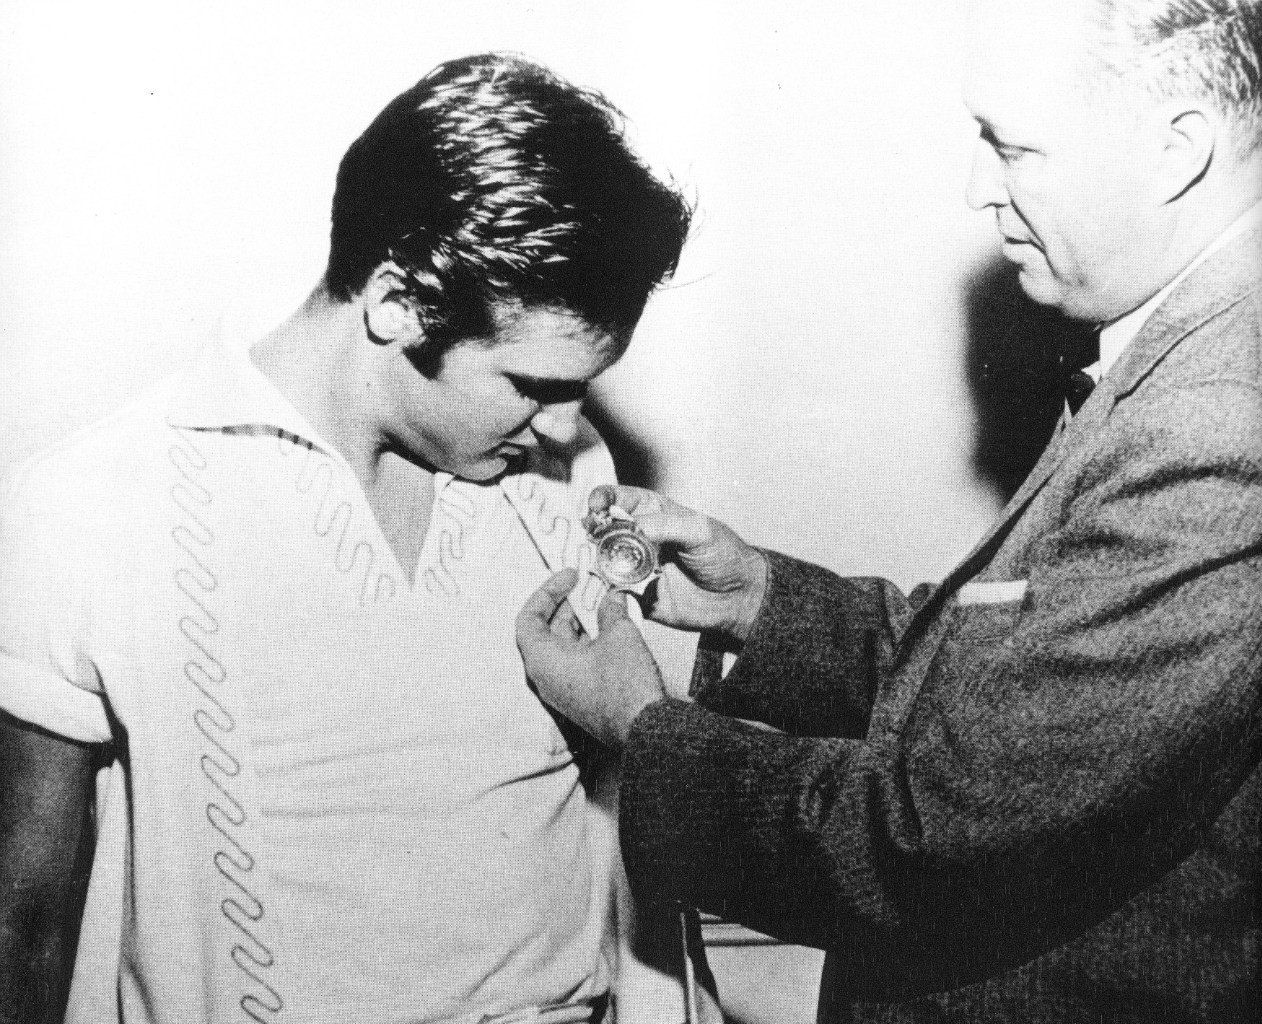 Memphis, TN, Saturday, 29 September 1956: Elvis Presley receives his first badge from Sergeant Fred Woodward of the Memphis PD. Source: http://www.elvis-collectors.com/forum/viewtopic.php?f=8&t=44092&view=unread#unread